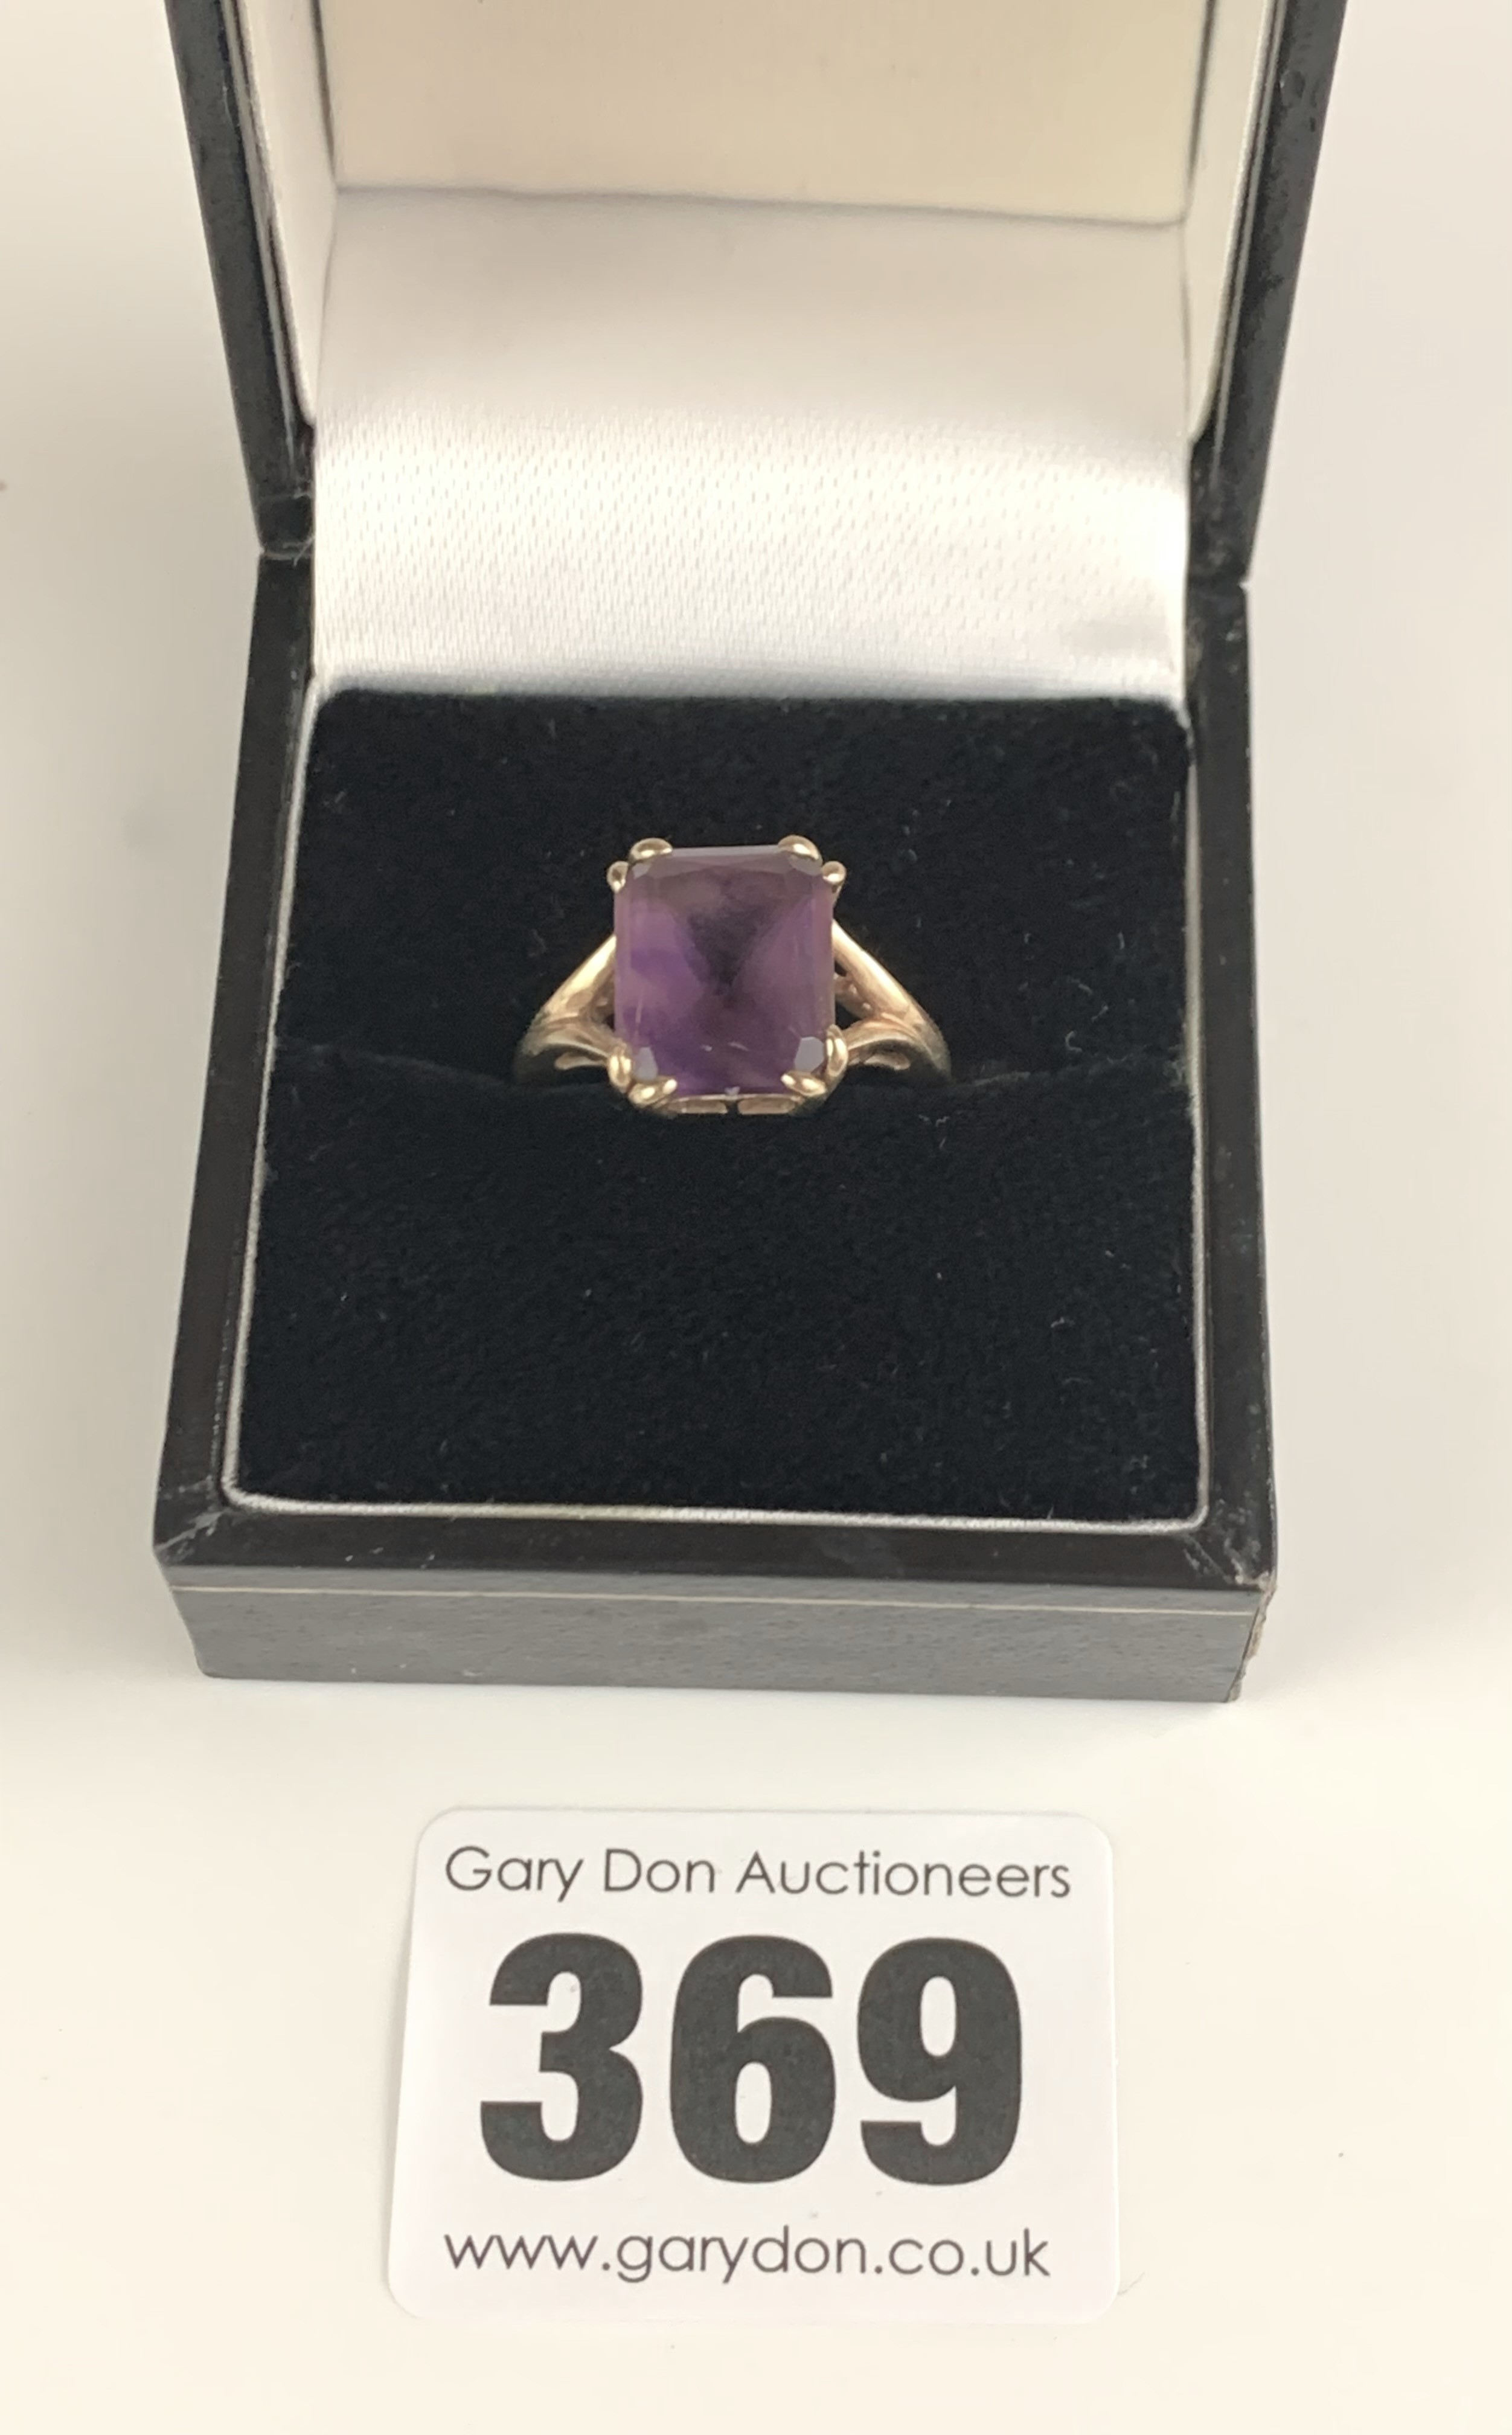 9k gold ring with purple stone, size L, w: 2.6 gms